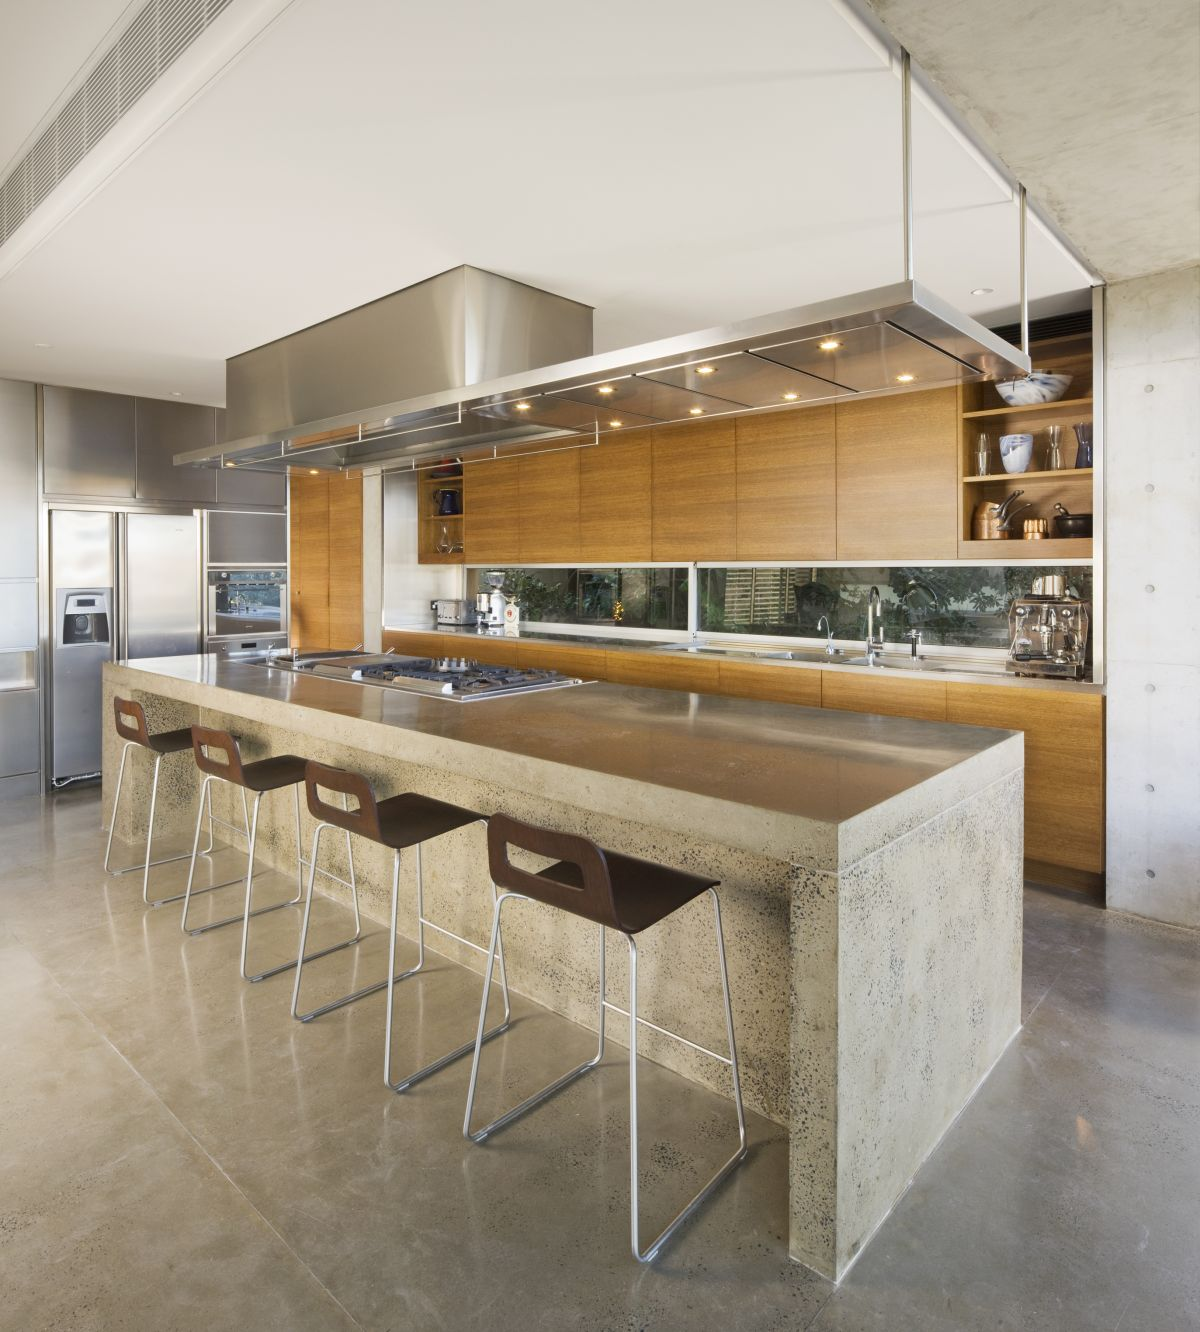 Modern Small Kitchen Design: Simply Inspiring 10 Wonderful Kitchen Design Lines That